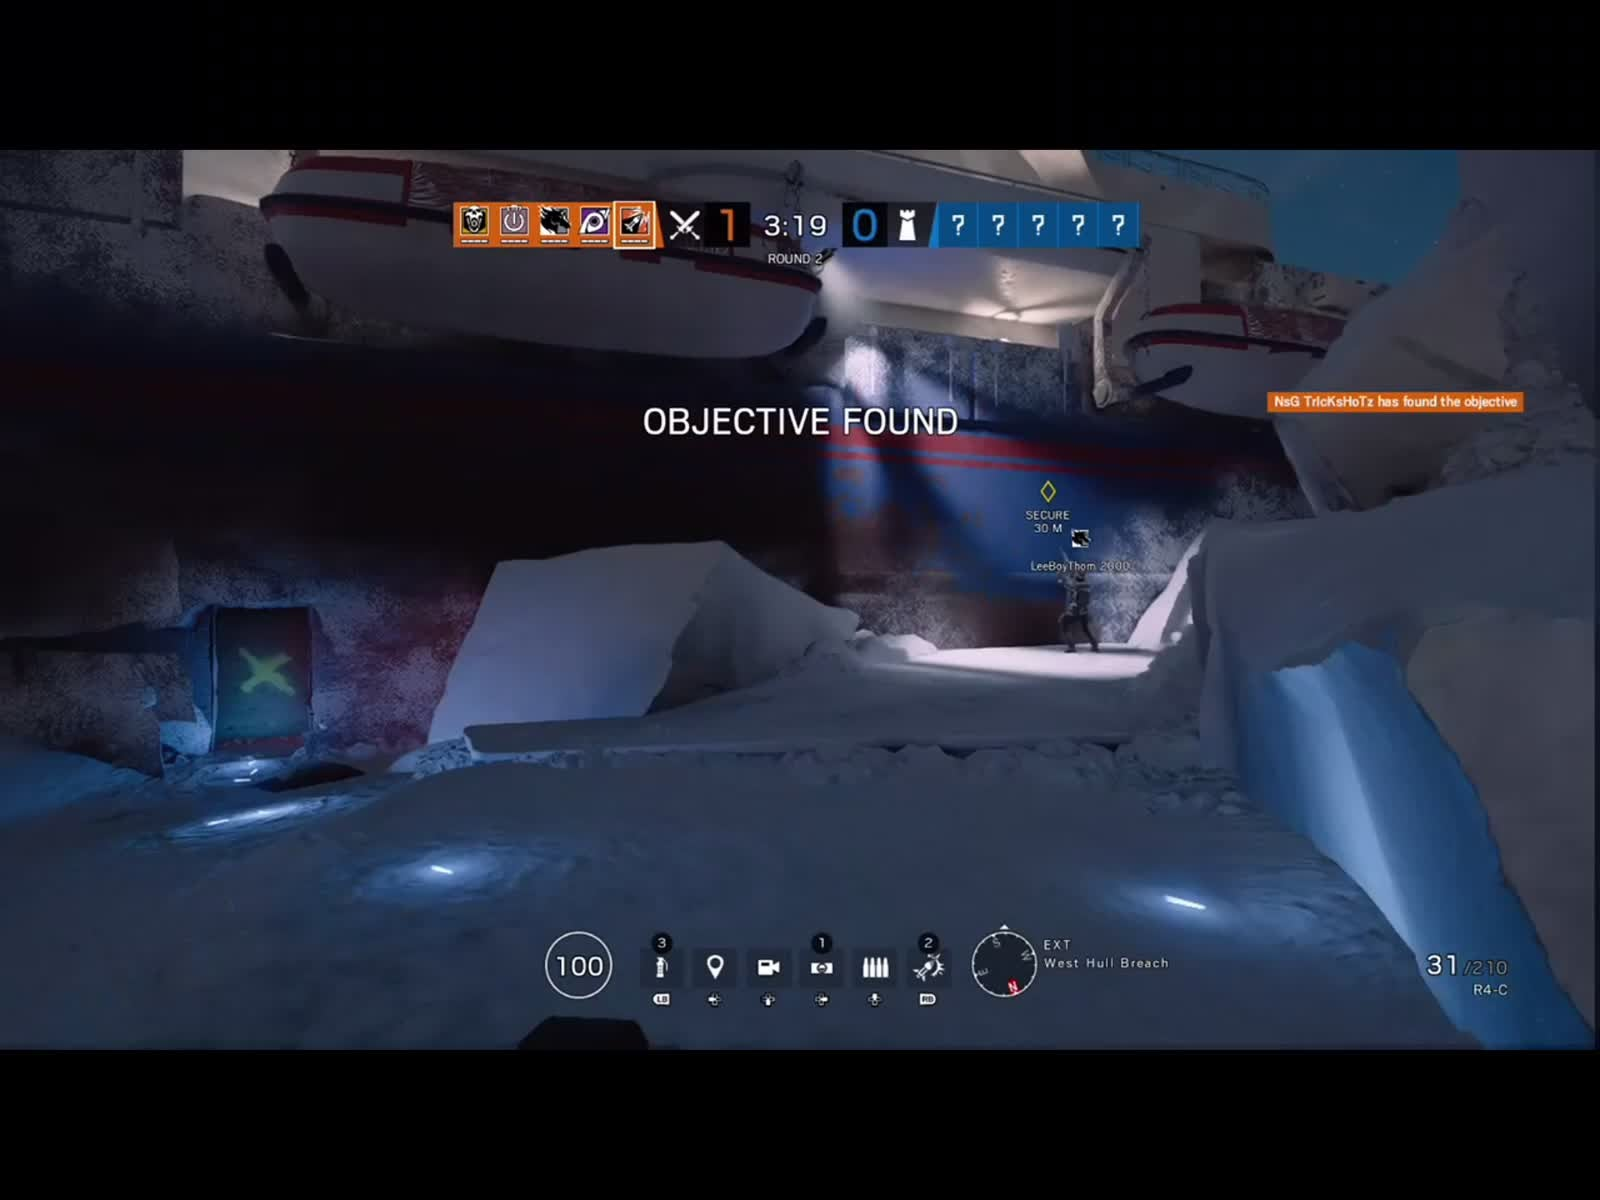 Rainbow Six: General - Ash Rush: 3v1 clutch! video cover image 0